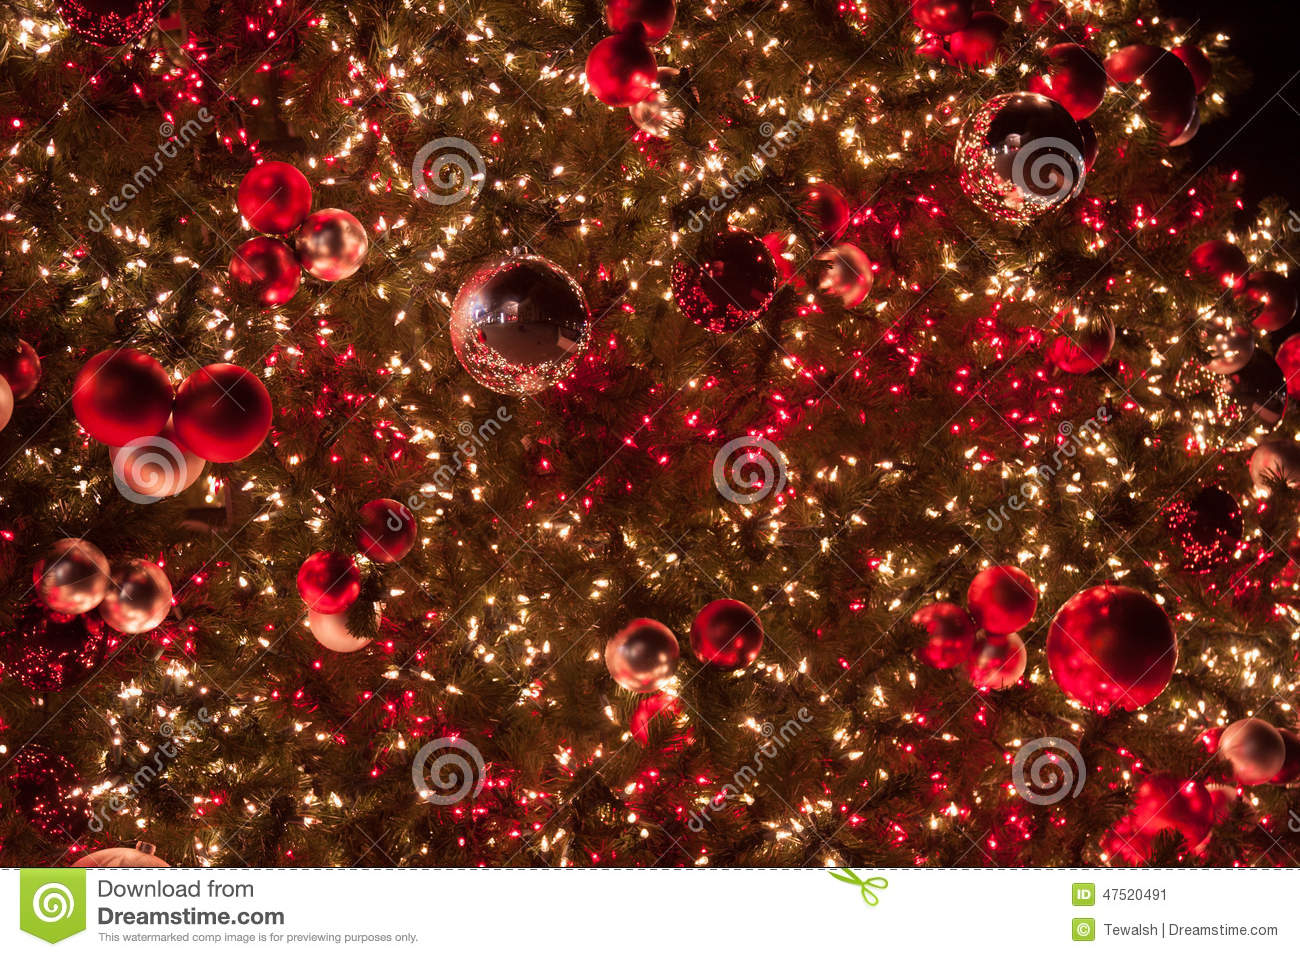 Beautiful Christmas Ornaments beautiful christmas ornaments and lights stock photo - image: 47520491